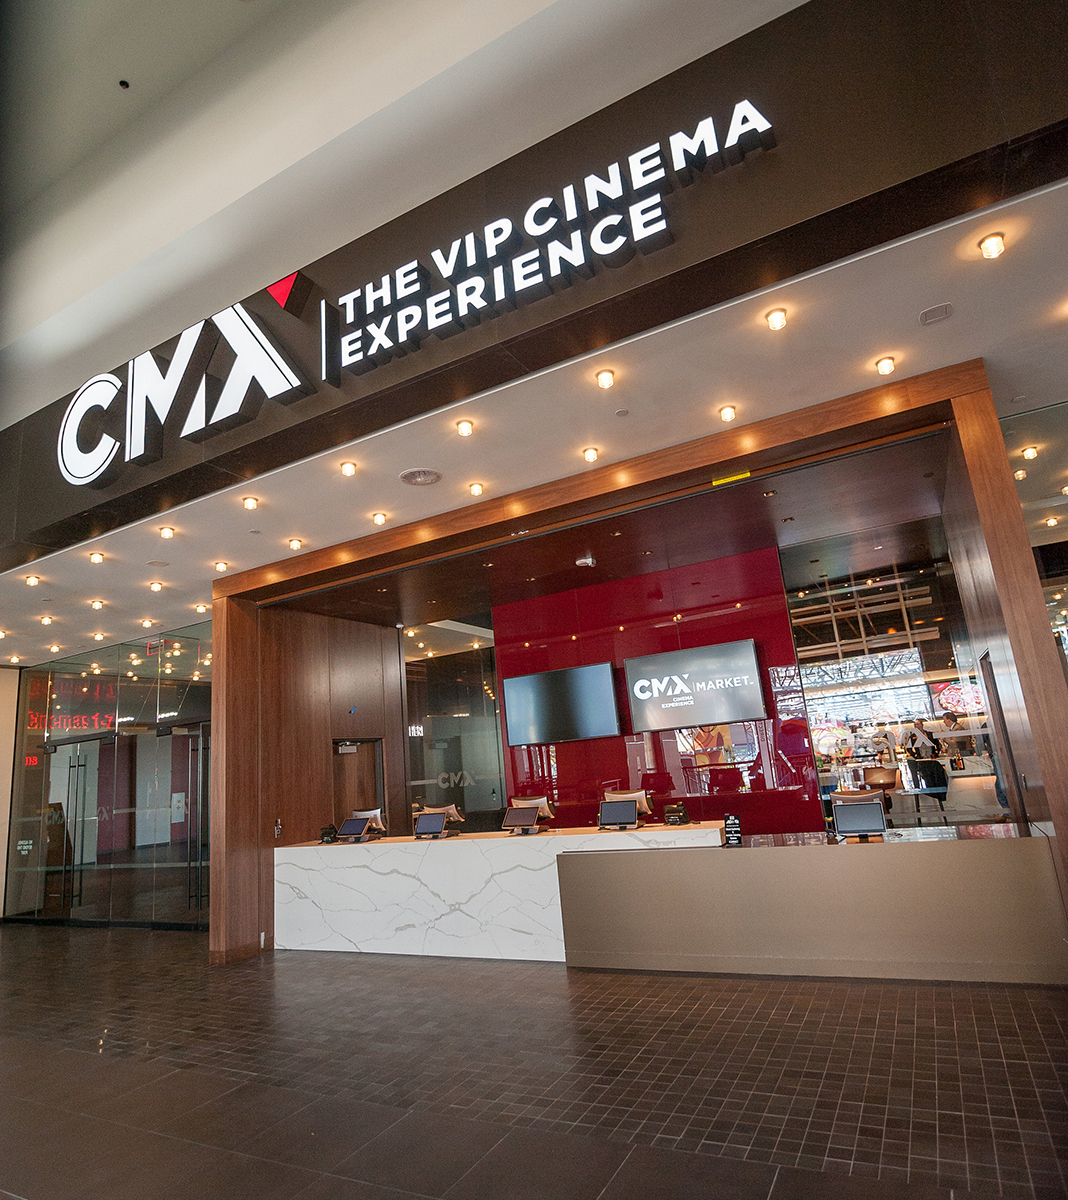 The entrance of CMX Market Cinemas at Mall of America